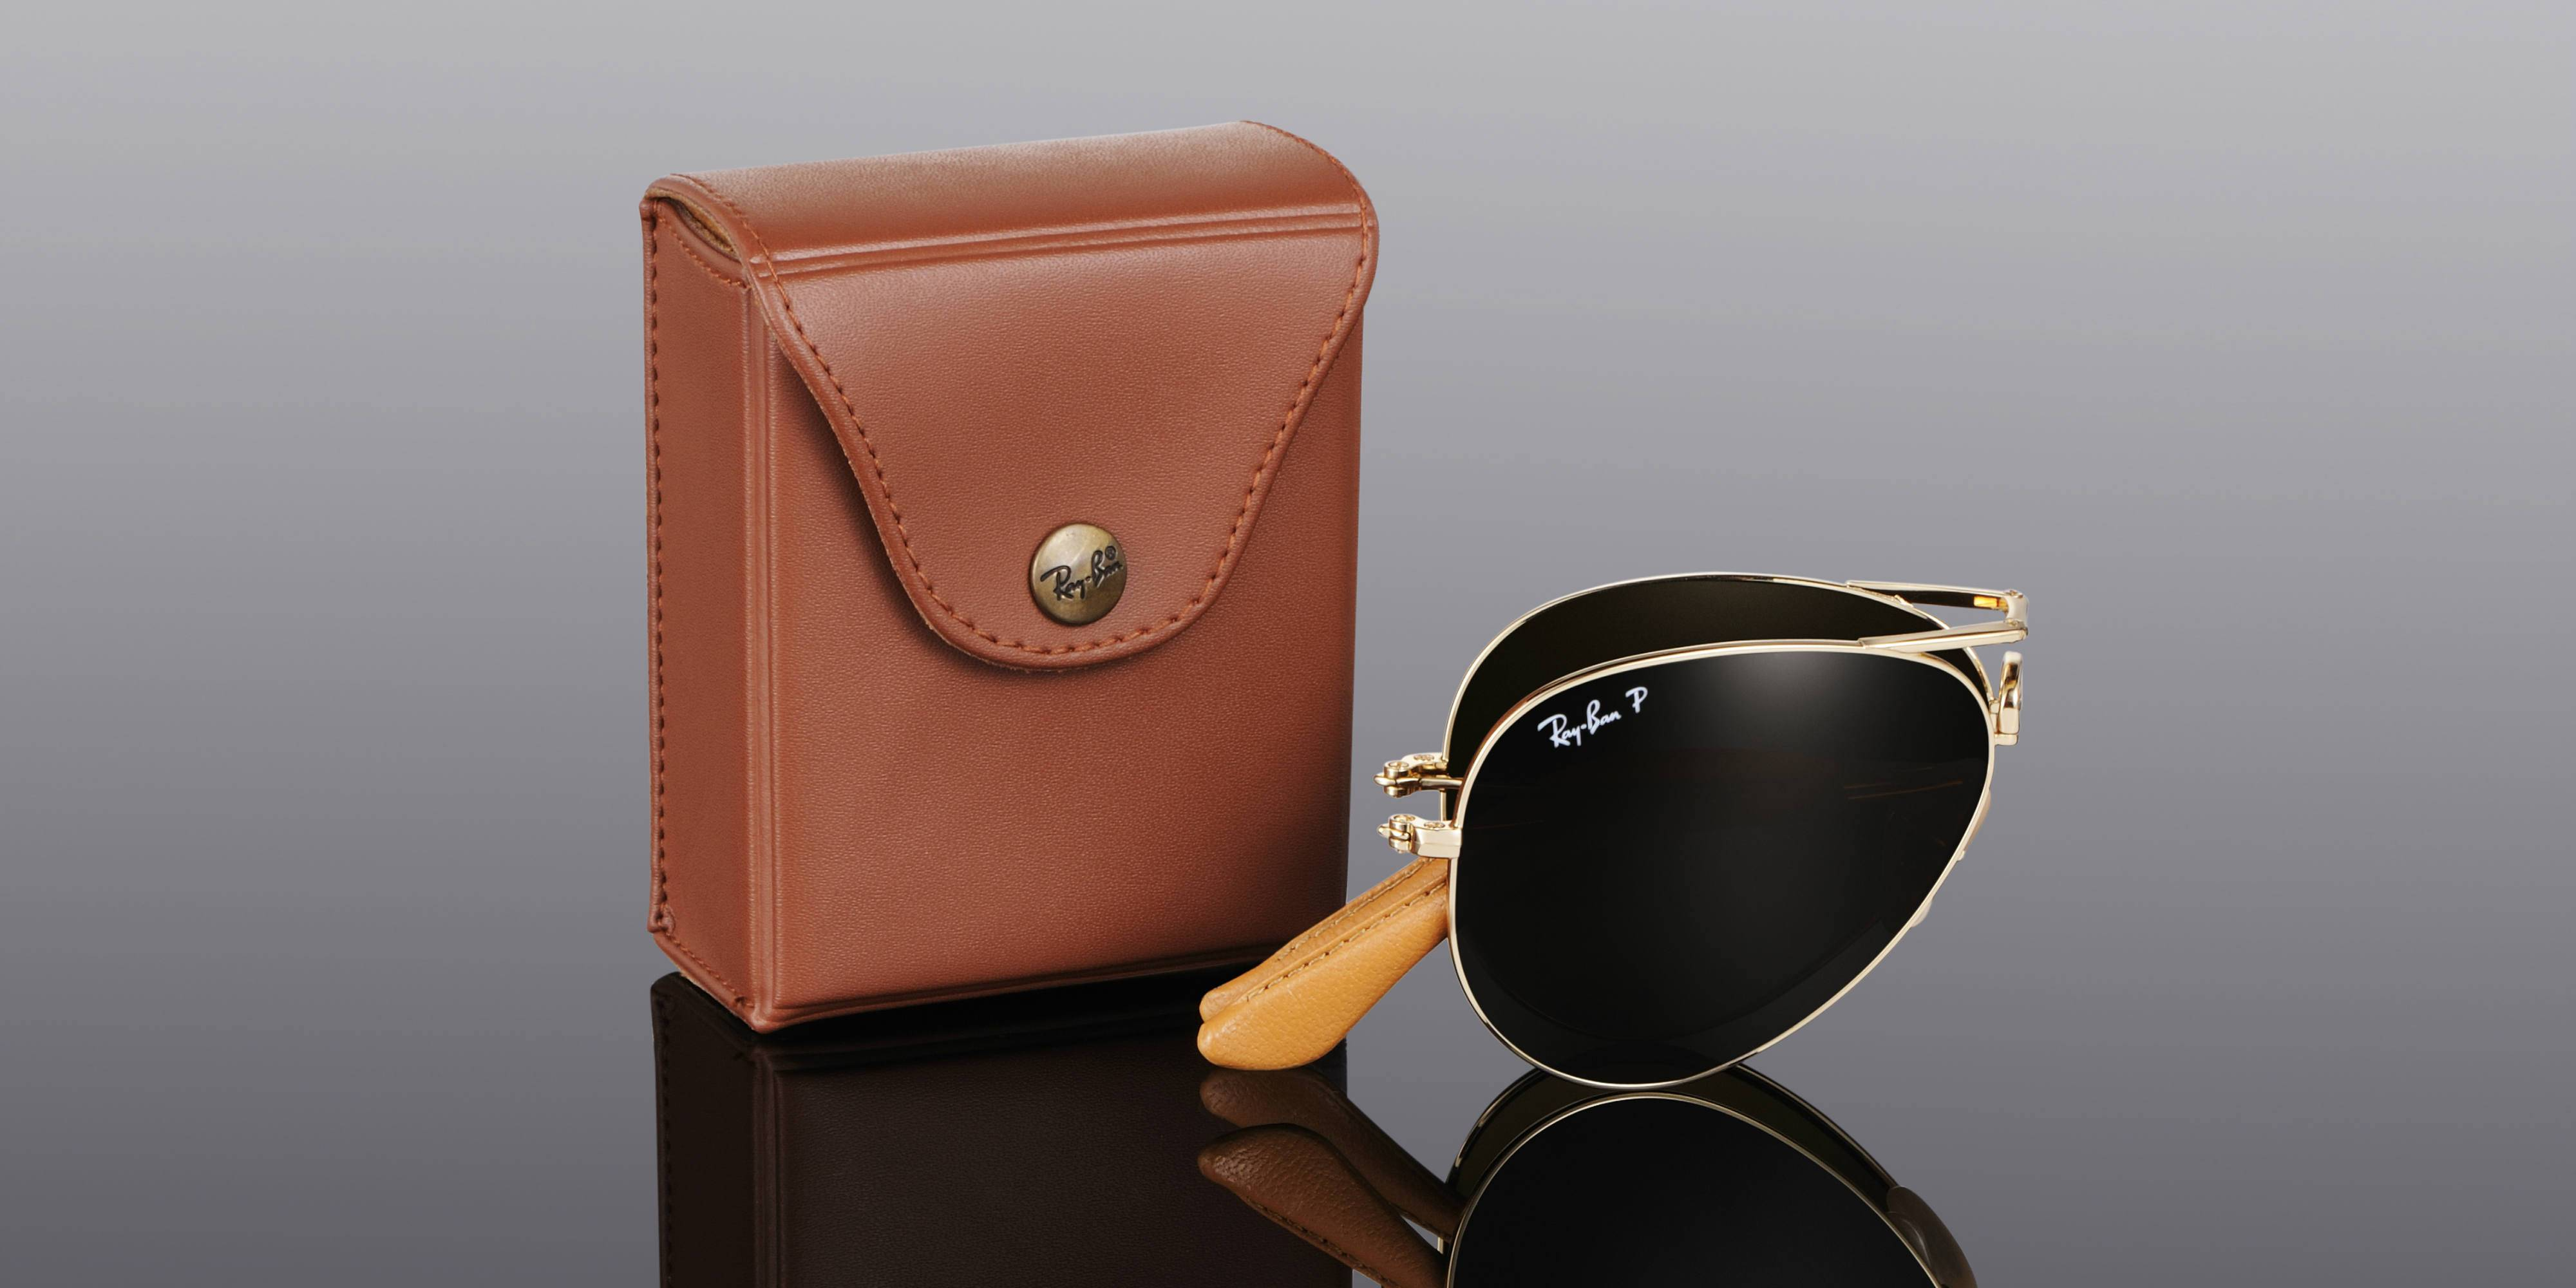 ray ban folding sunglasses case  there were 1200 units of the last one, and each came in brown leather case, resembling a jewel. ray ban aviator folding